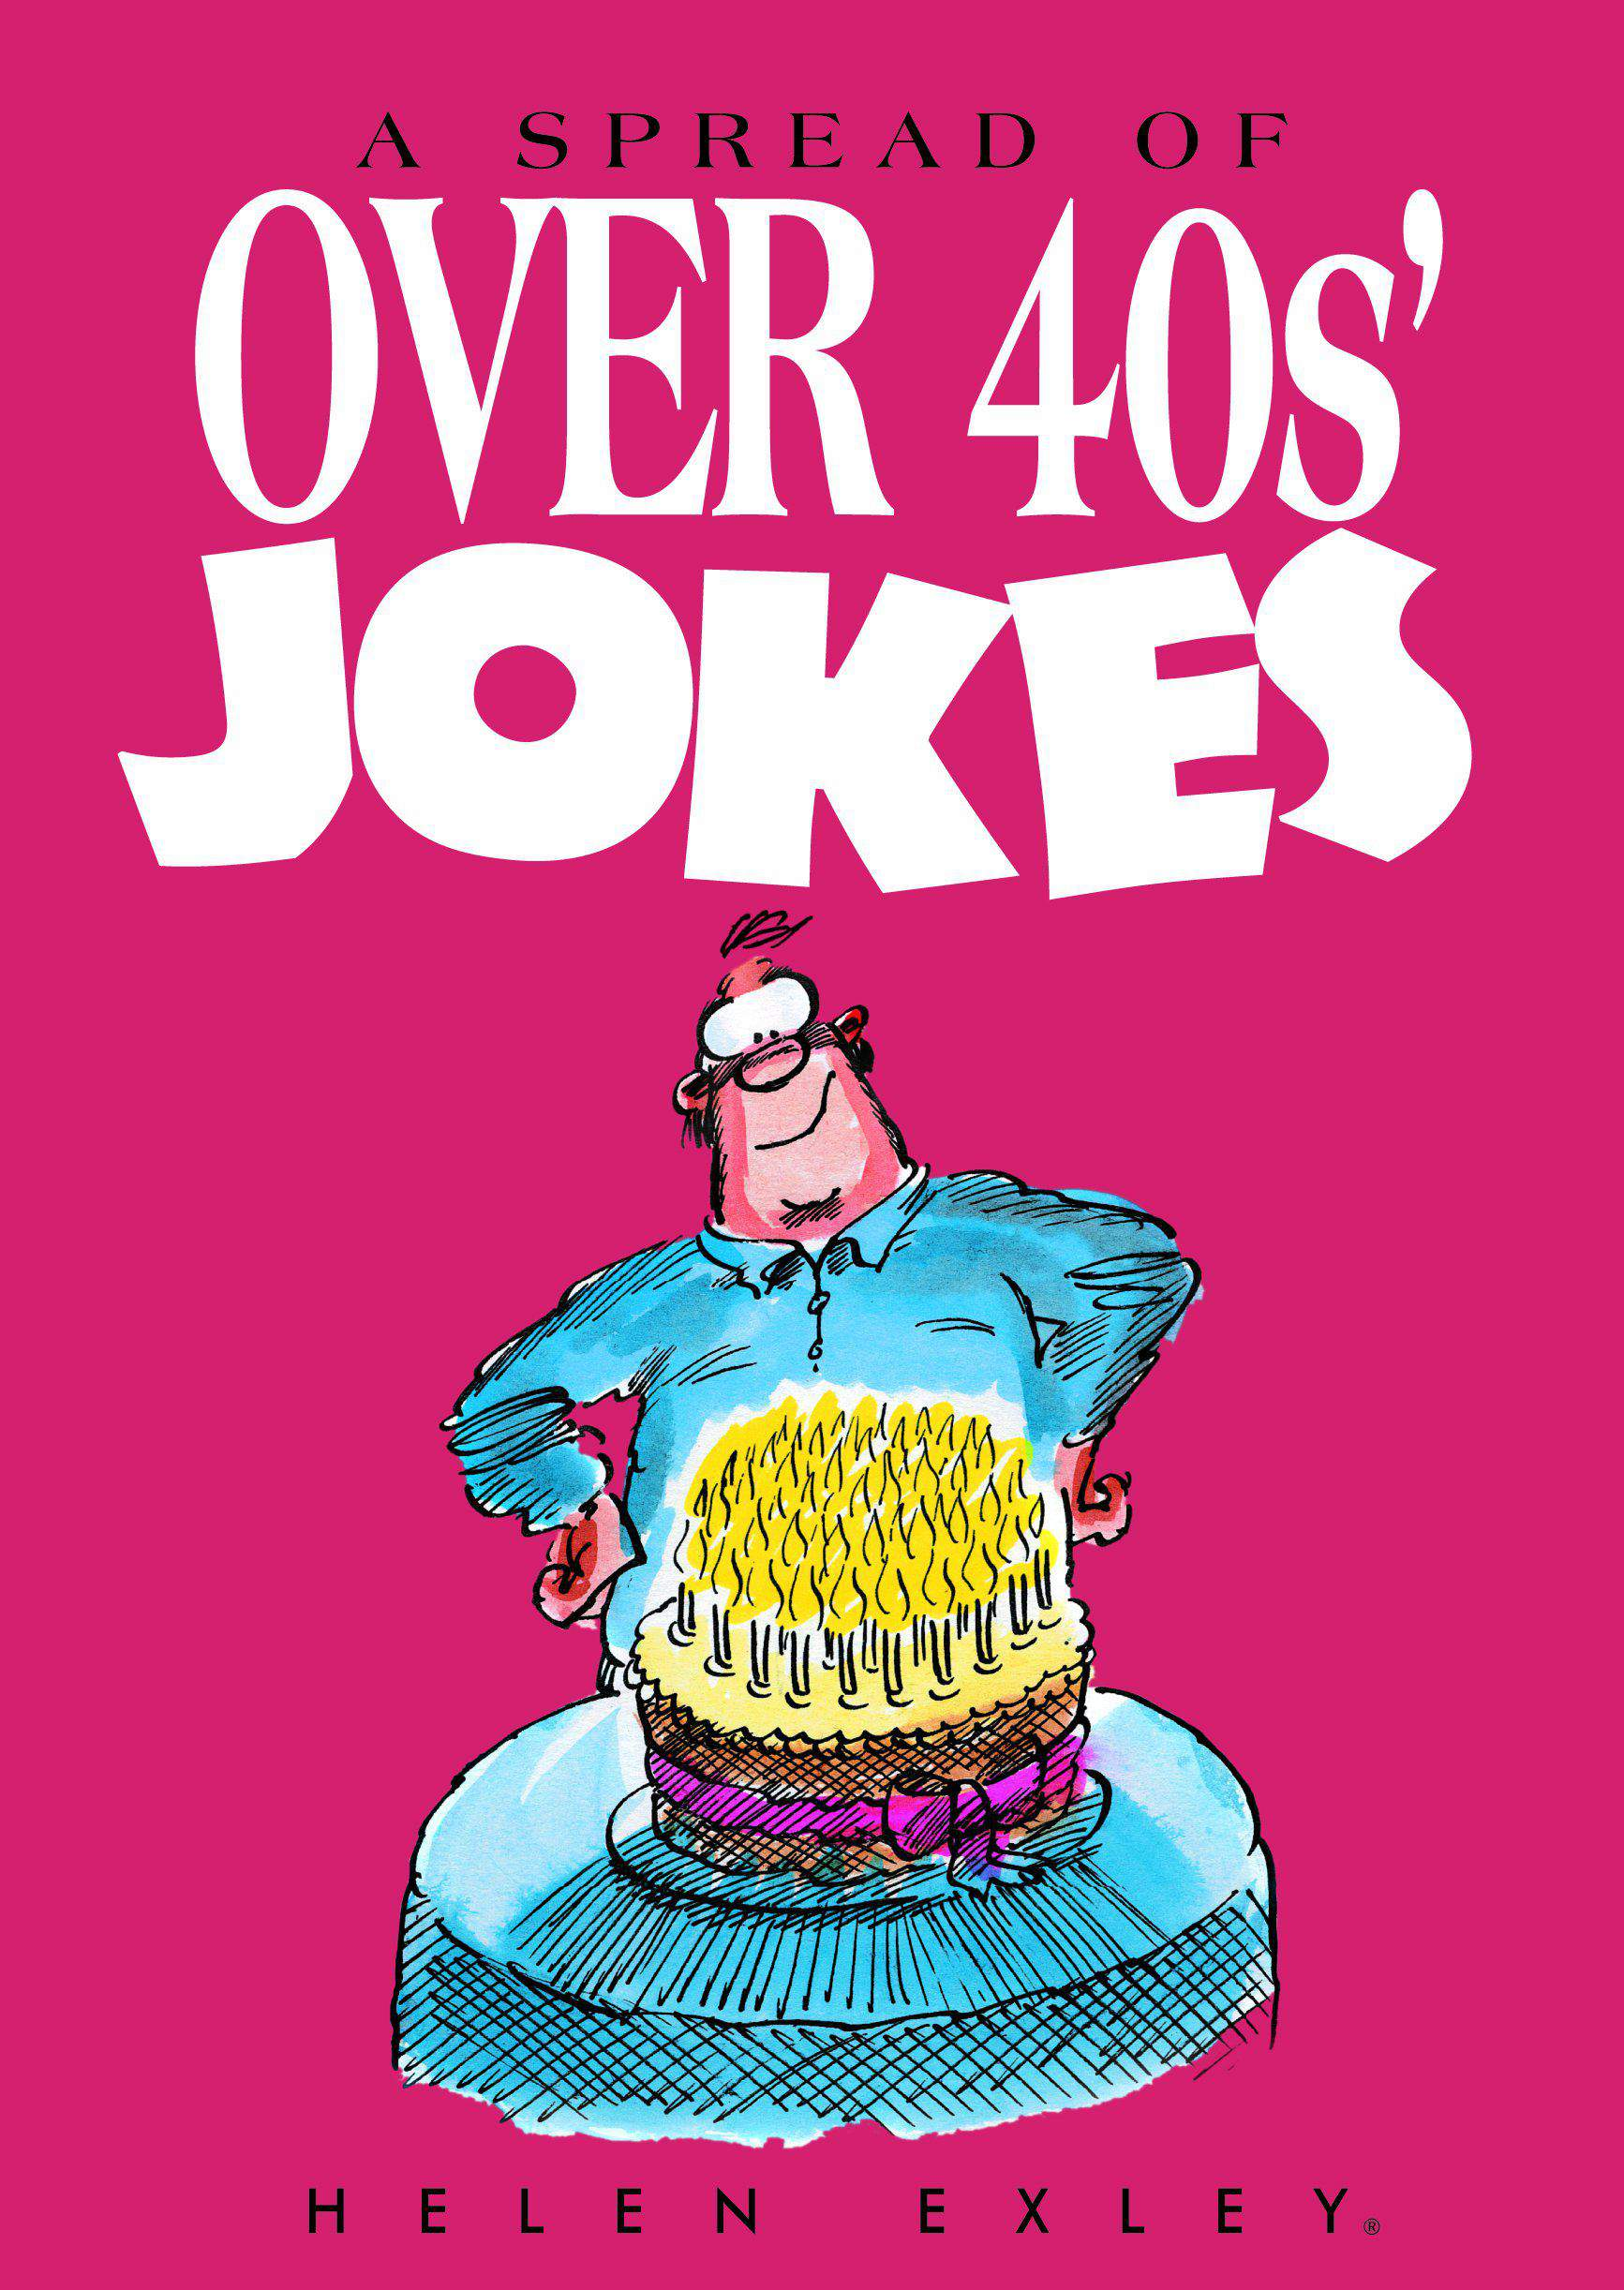 Spread of Over 40s Jokes